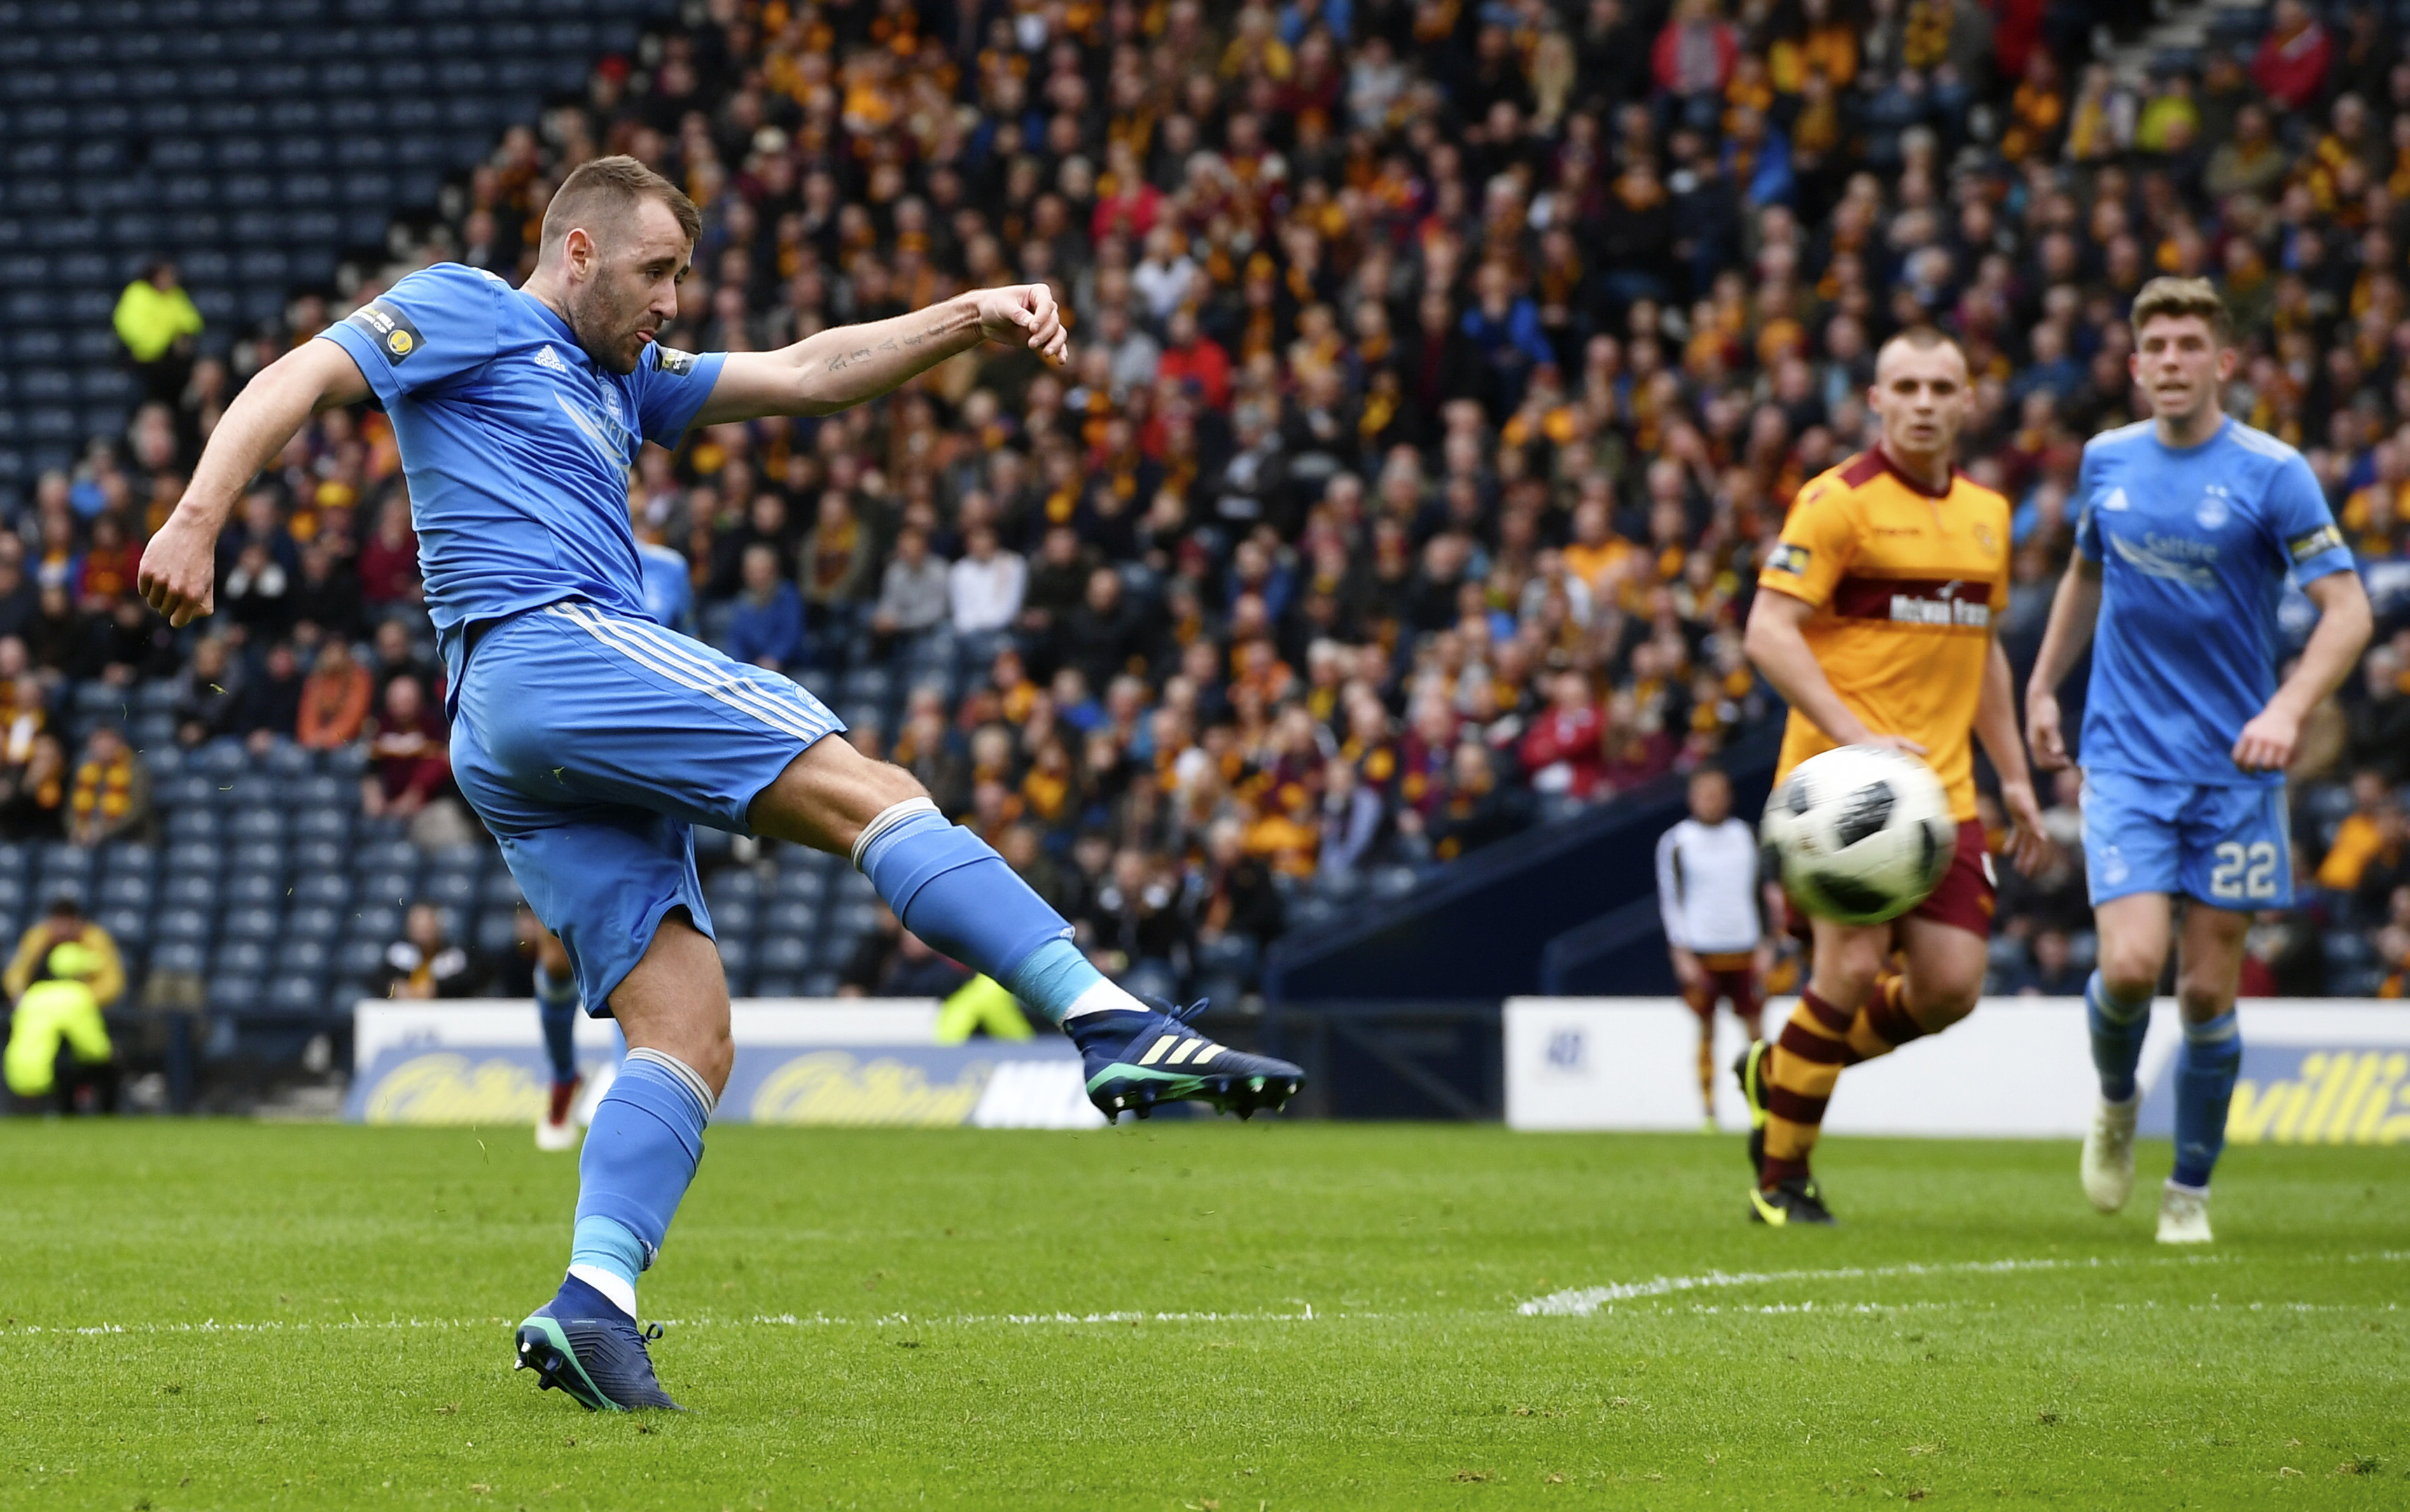 Aberdeen's Niall McGinn goes close with a chance against Motherwell.